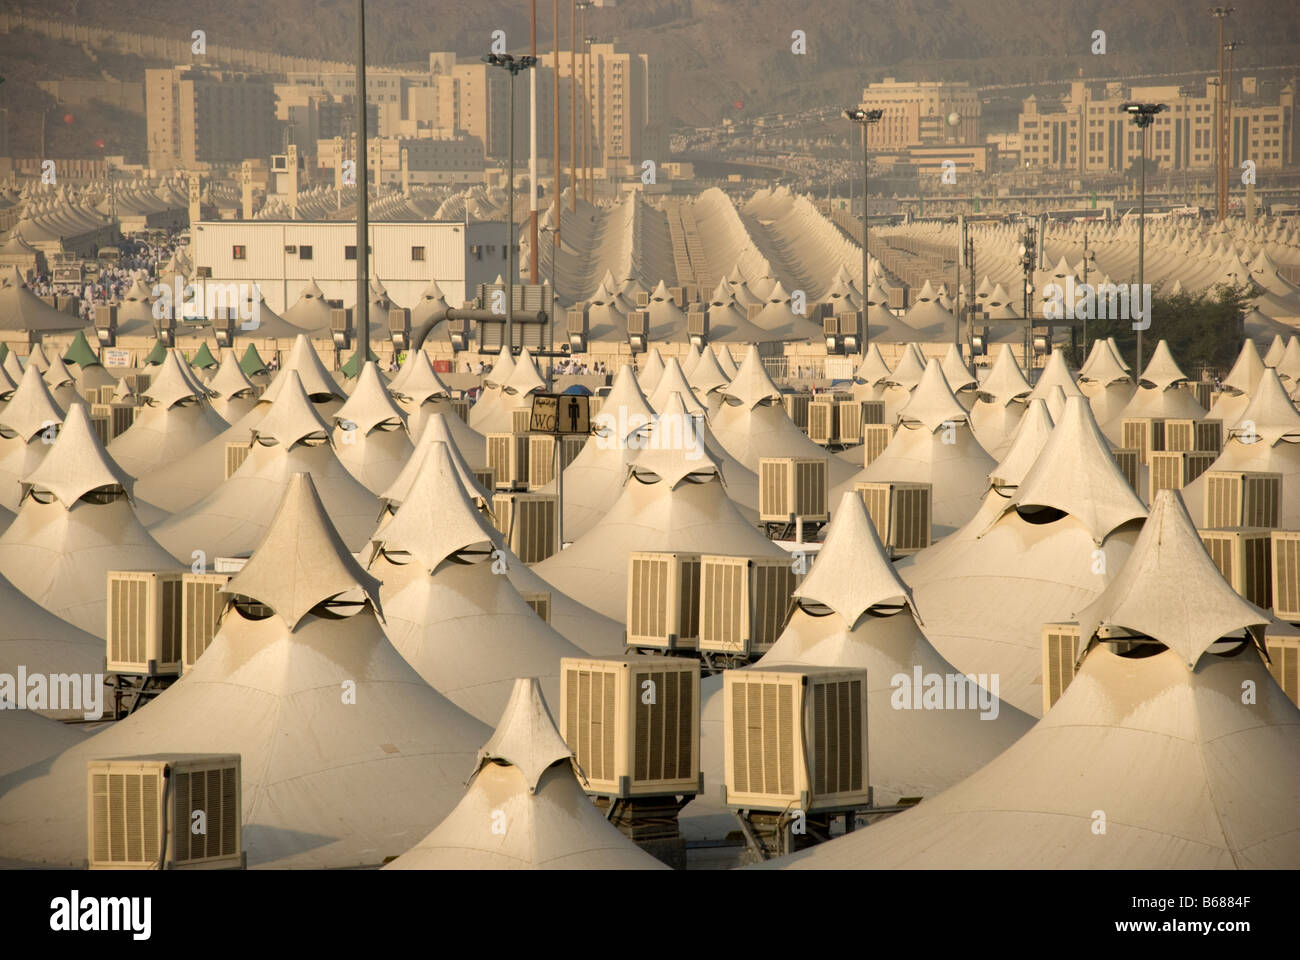 A limited overview of some tents for Hajj pilgrims in Mina Makkah Saudi Arabia & A limited overview of some tents for Hajj pilgrims in Mina Makkah ...